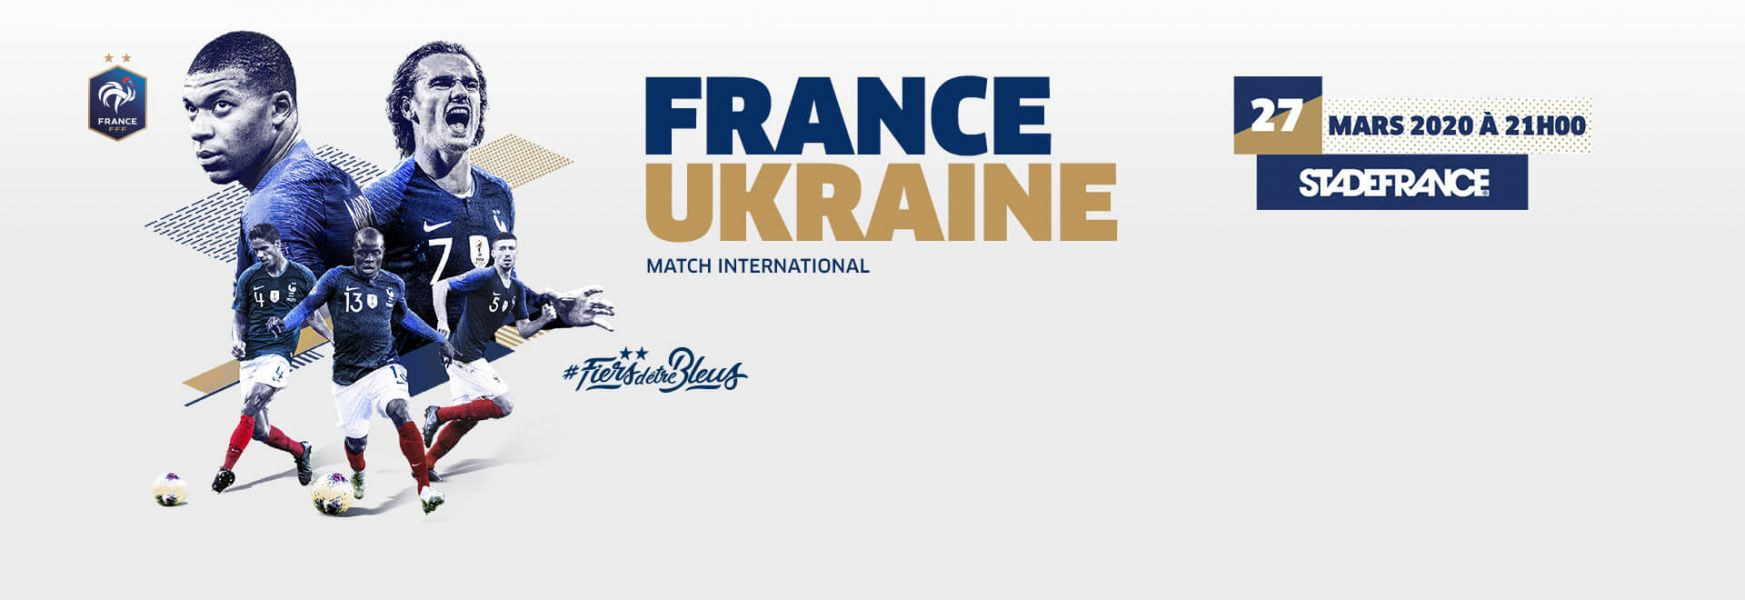 FRANCE / UKRAINE le vendredi 27 mars 2020 au Stade de France